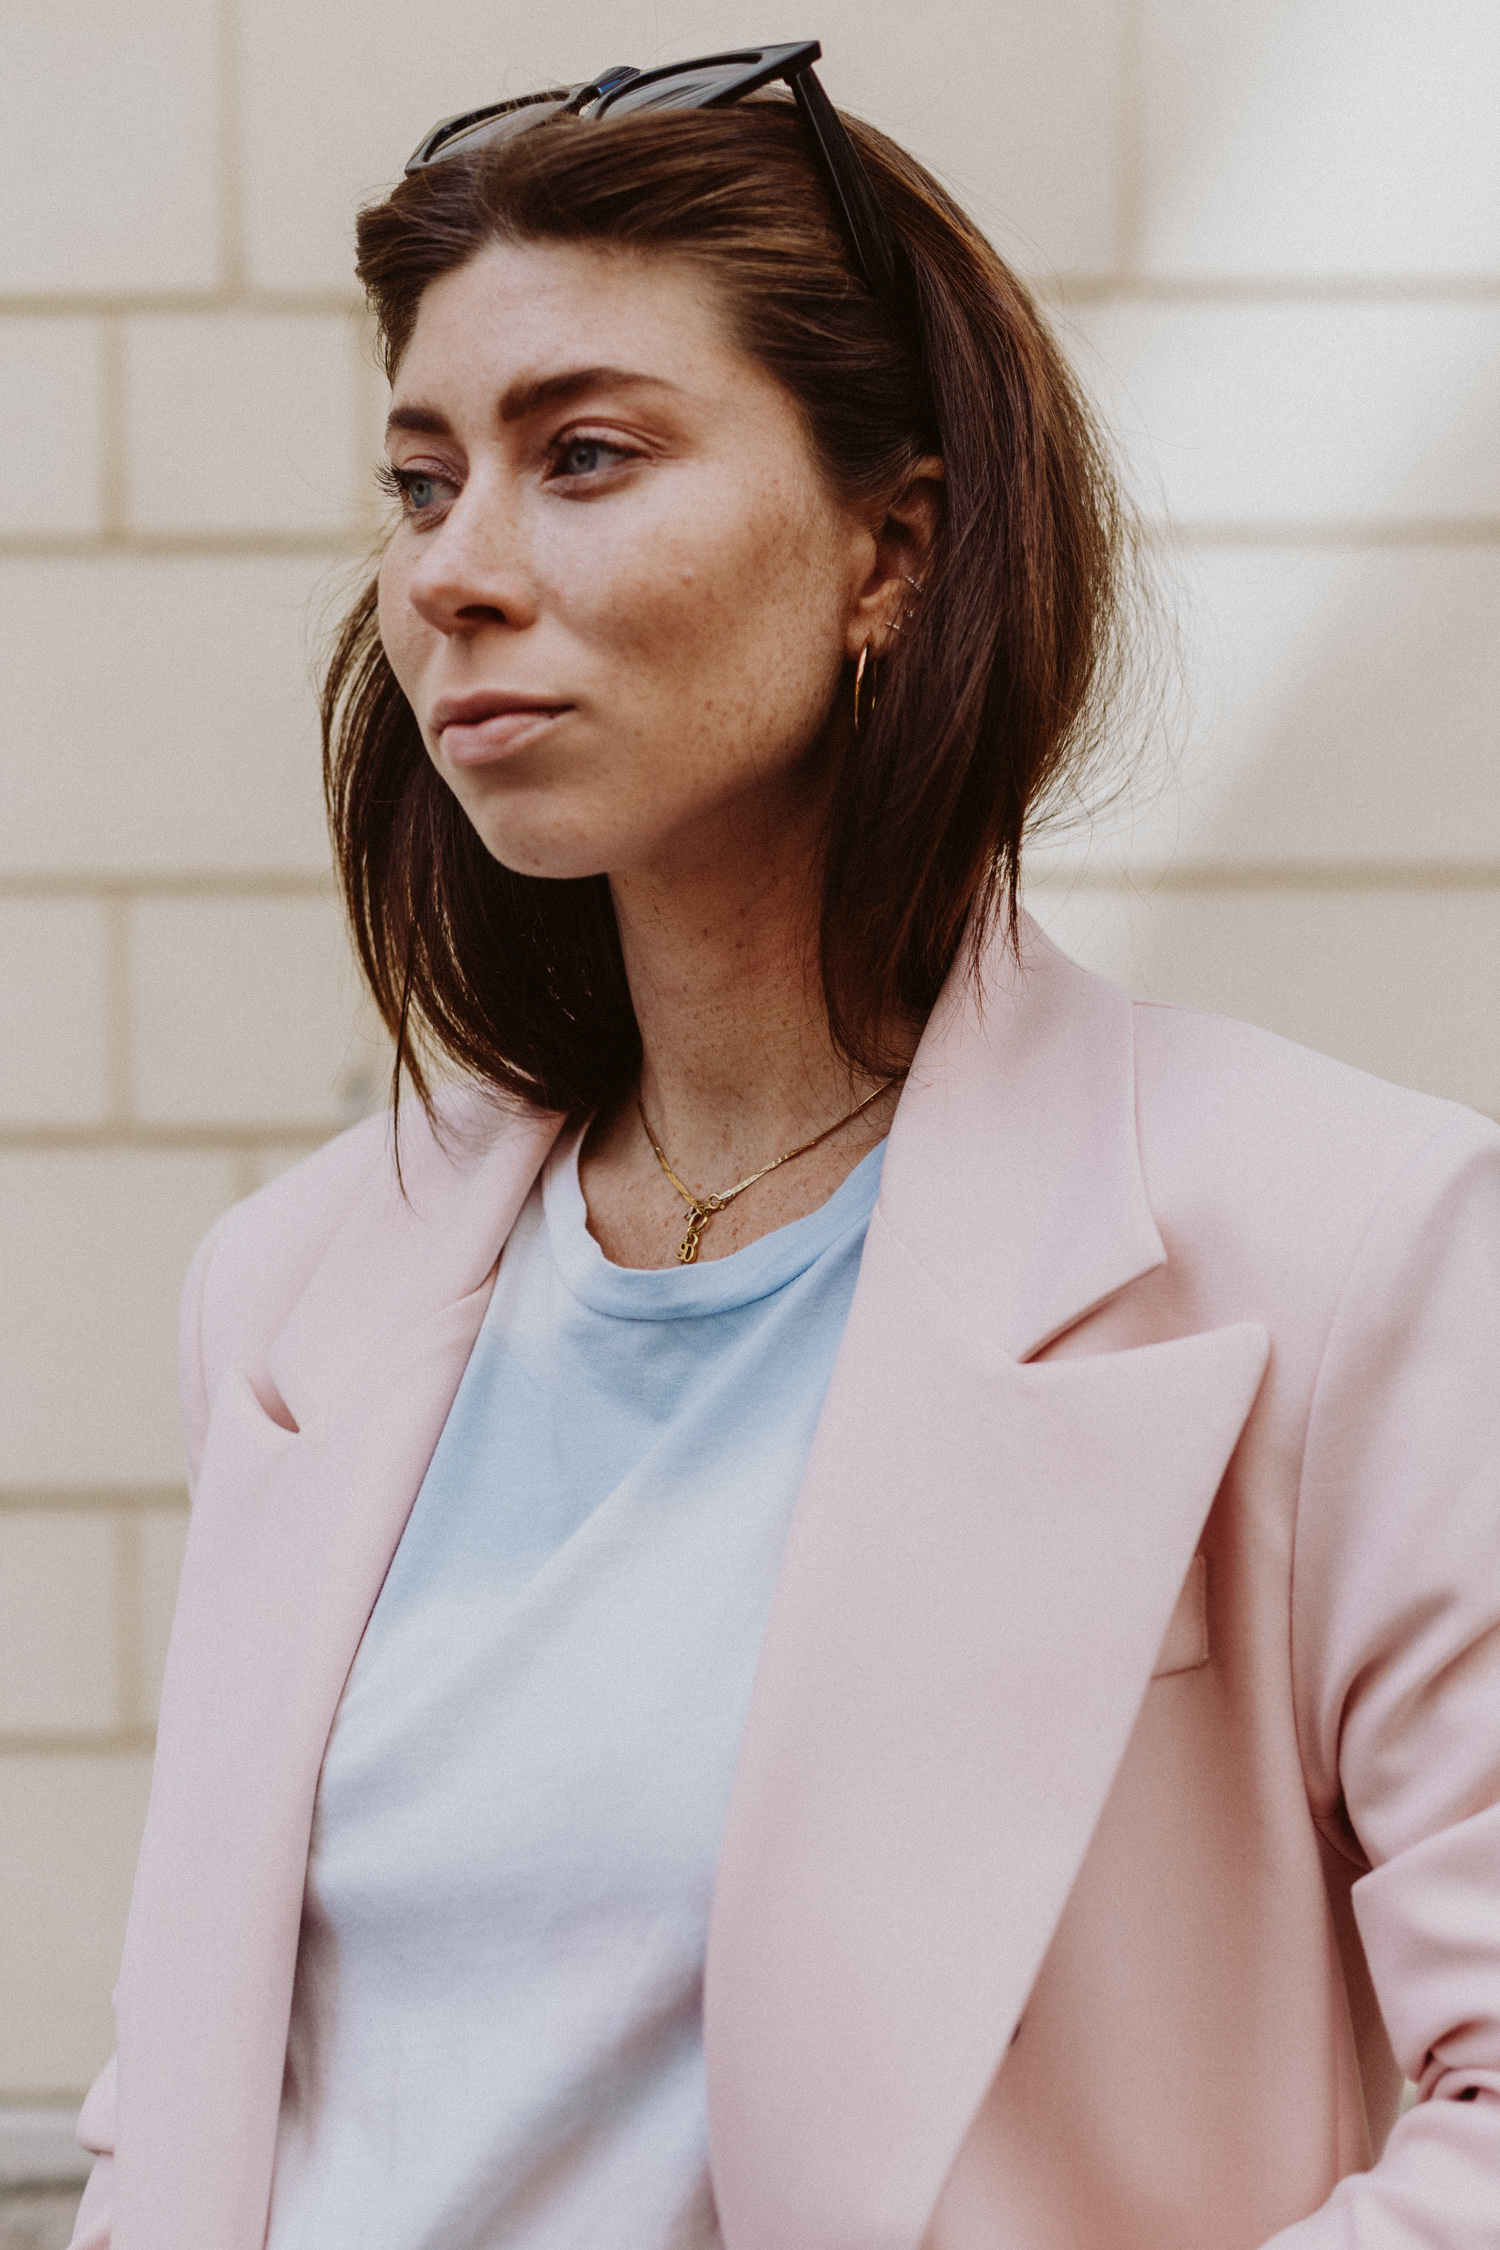 Editor's Pick: Pastels - The Daily Dose